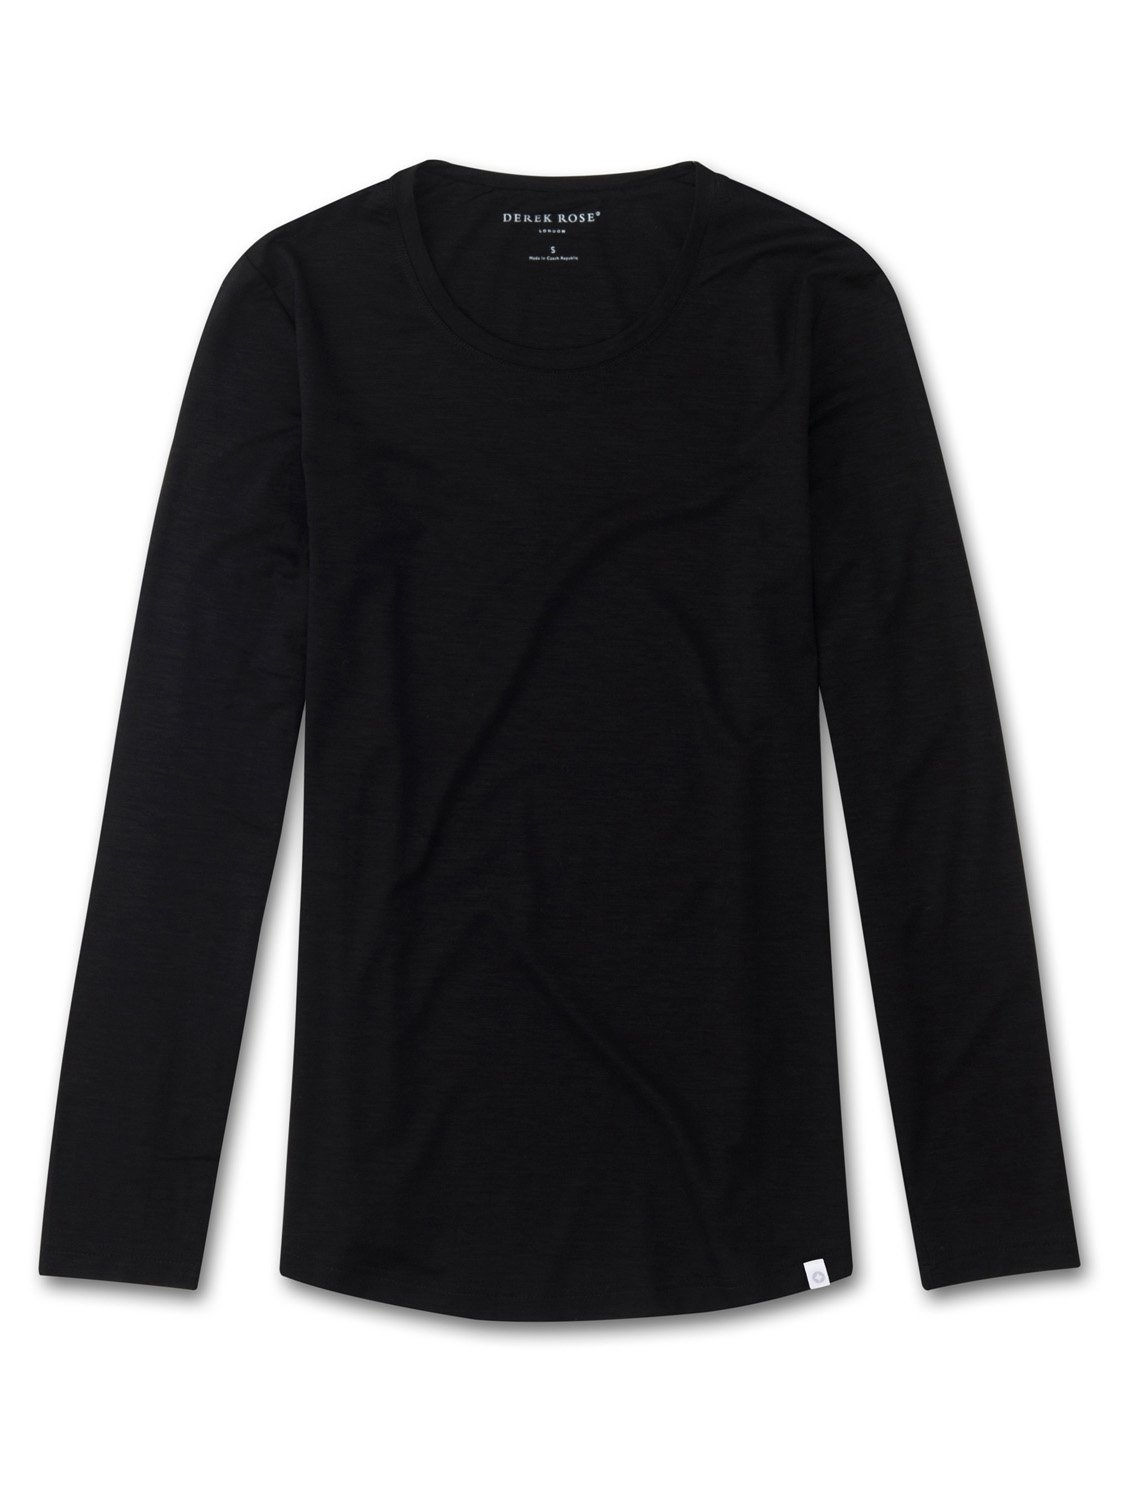 Women's Long Sleeve T-Shirt Carla Micro Modal Stretch Black